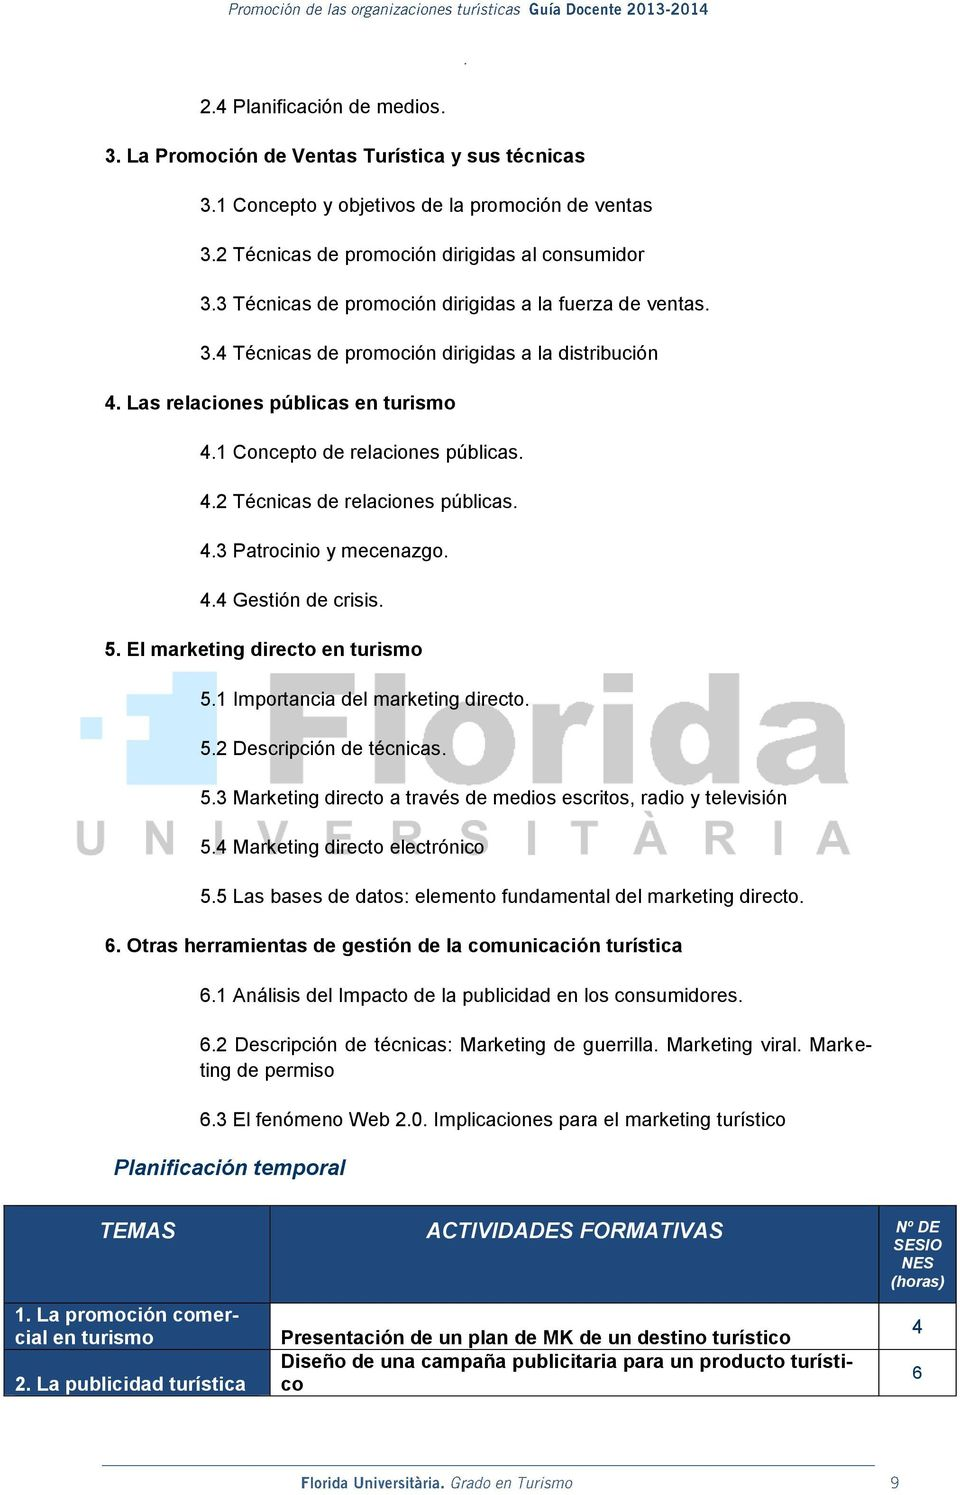 4.3 Patrcini y mecenazg. 4.4 Gestión de crisis. 5. El marketing direct en turism 5.1 Imprtancia del marketing direct. 5.2 Descripción de técnicas. 5.3 Marketing direct a través de medis escrits, radi y televisión 5.